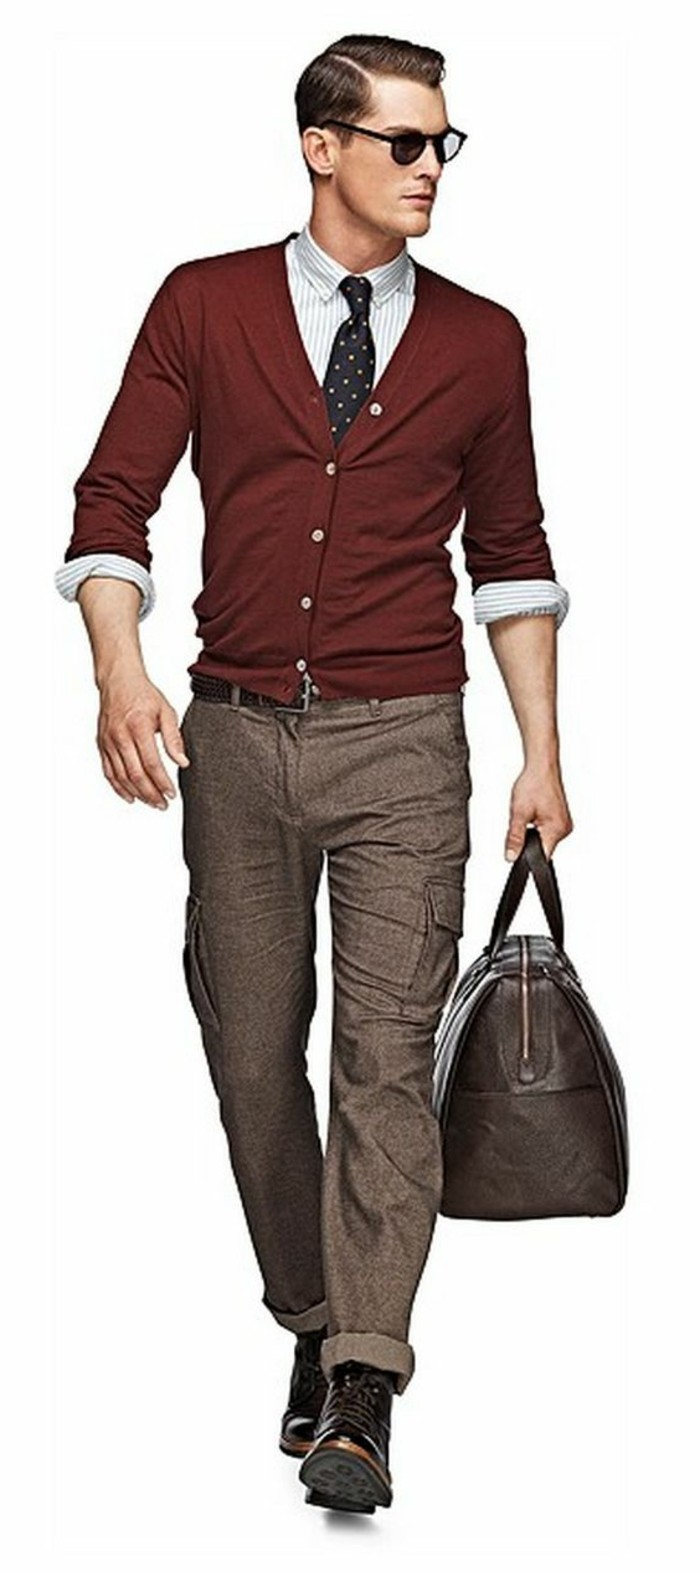 Tenue styl e homme fashion designs for Tenue interieur homme